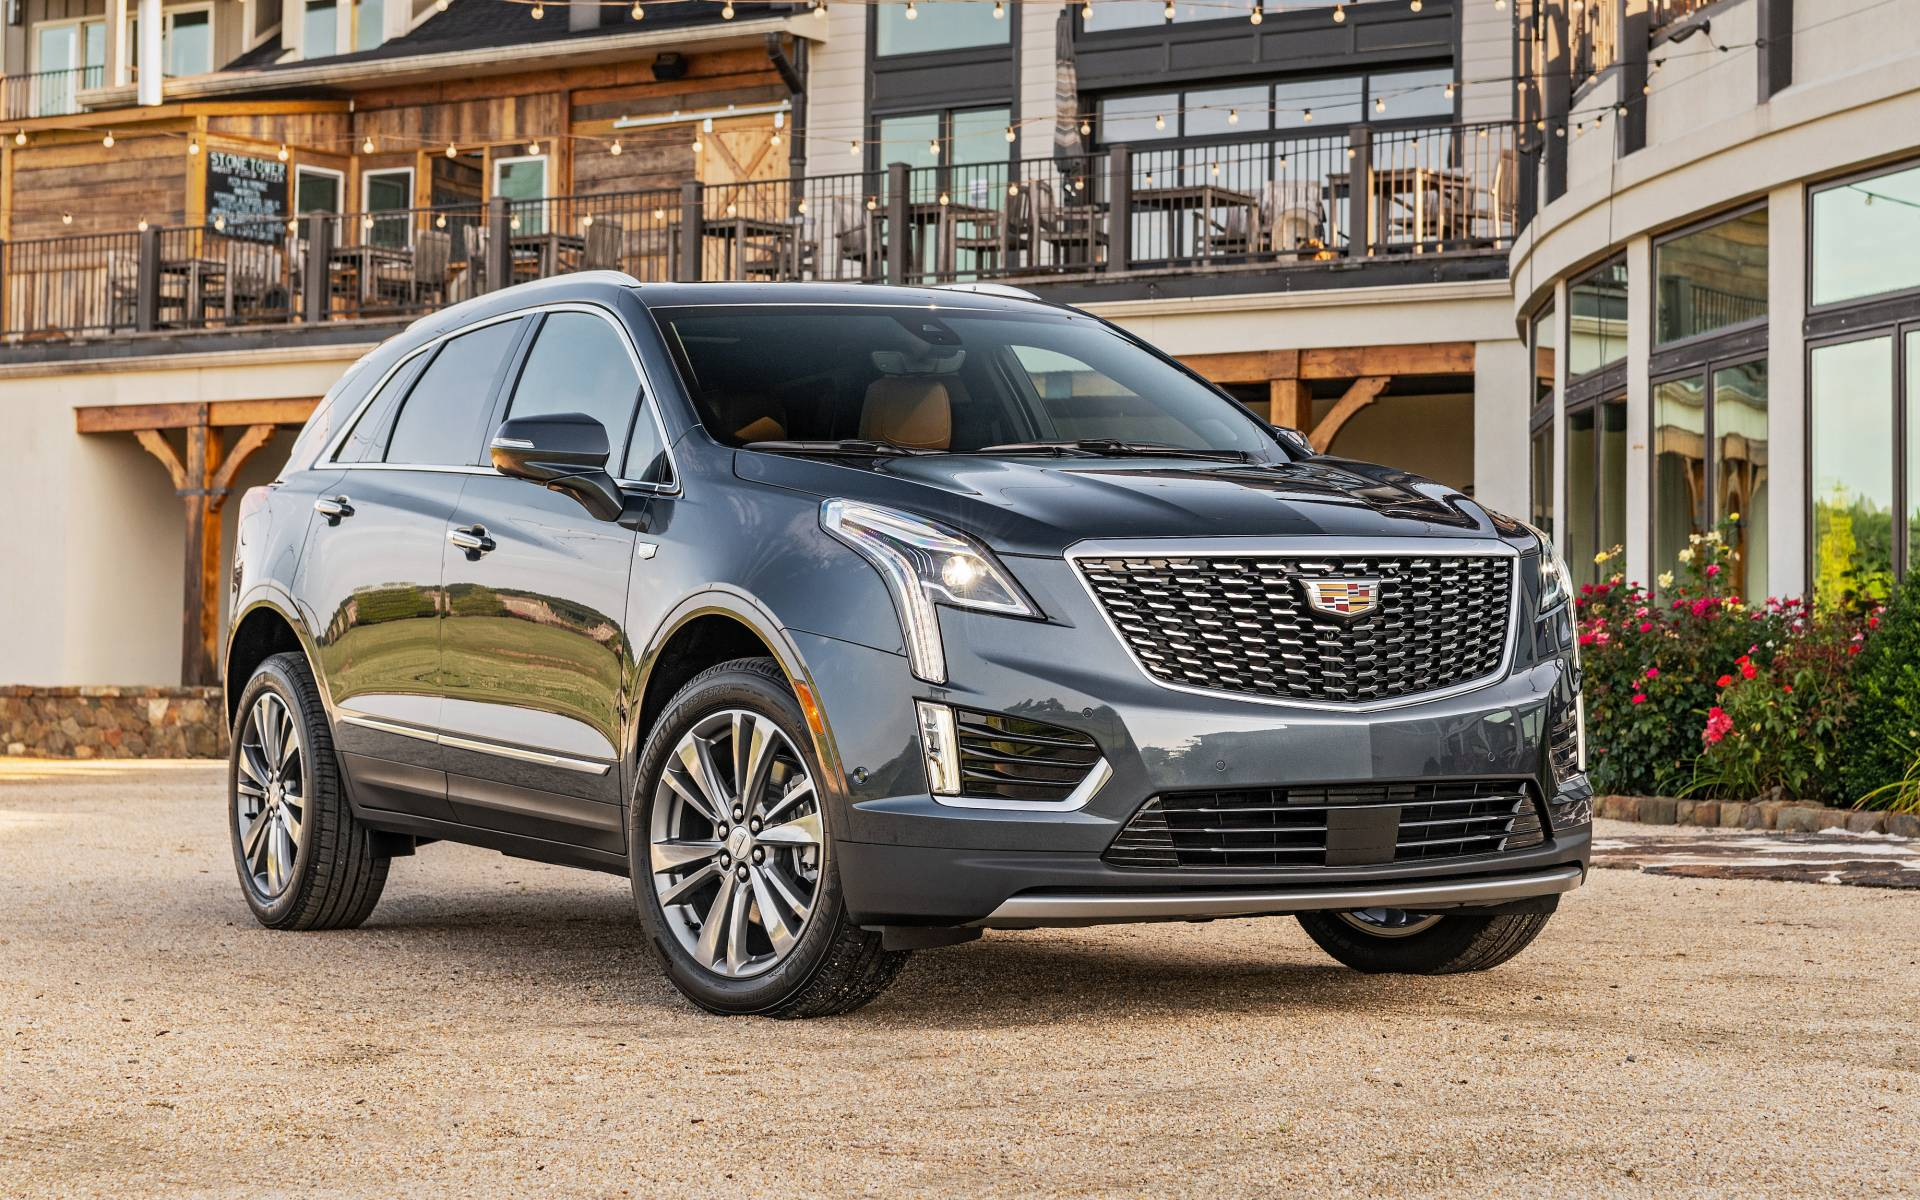 2020 Cadillac Xt5 Review Interior Price Specs >> 2020 Cadillac Xt5 News Reviews Picture Galleries And